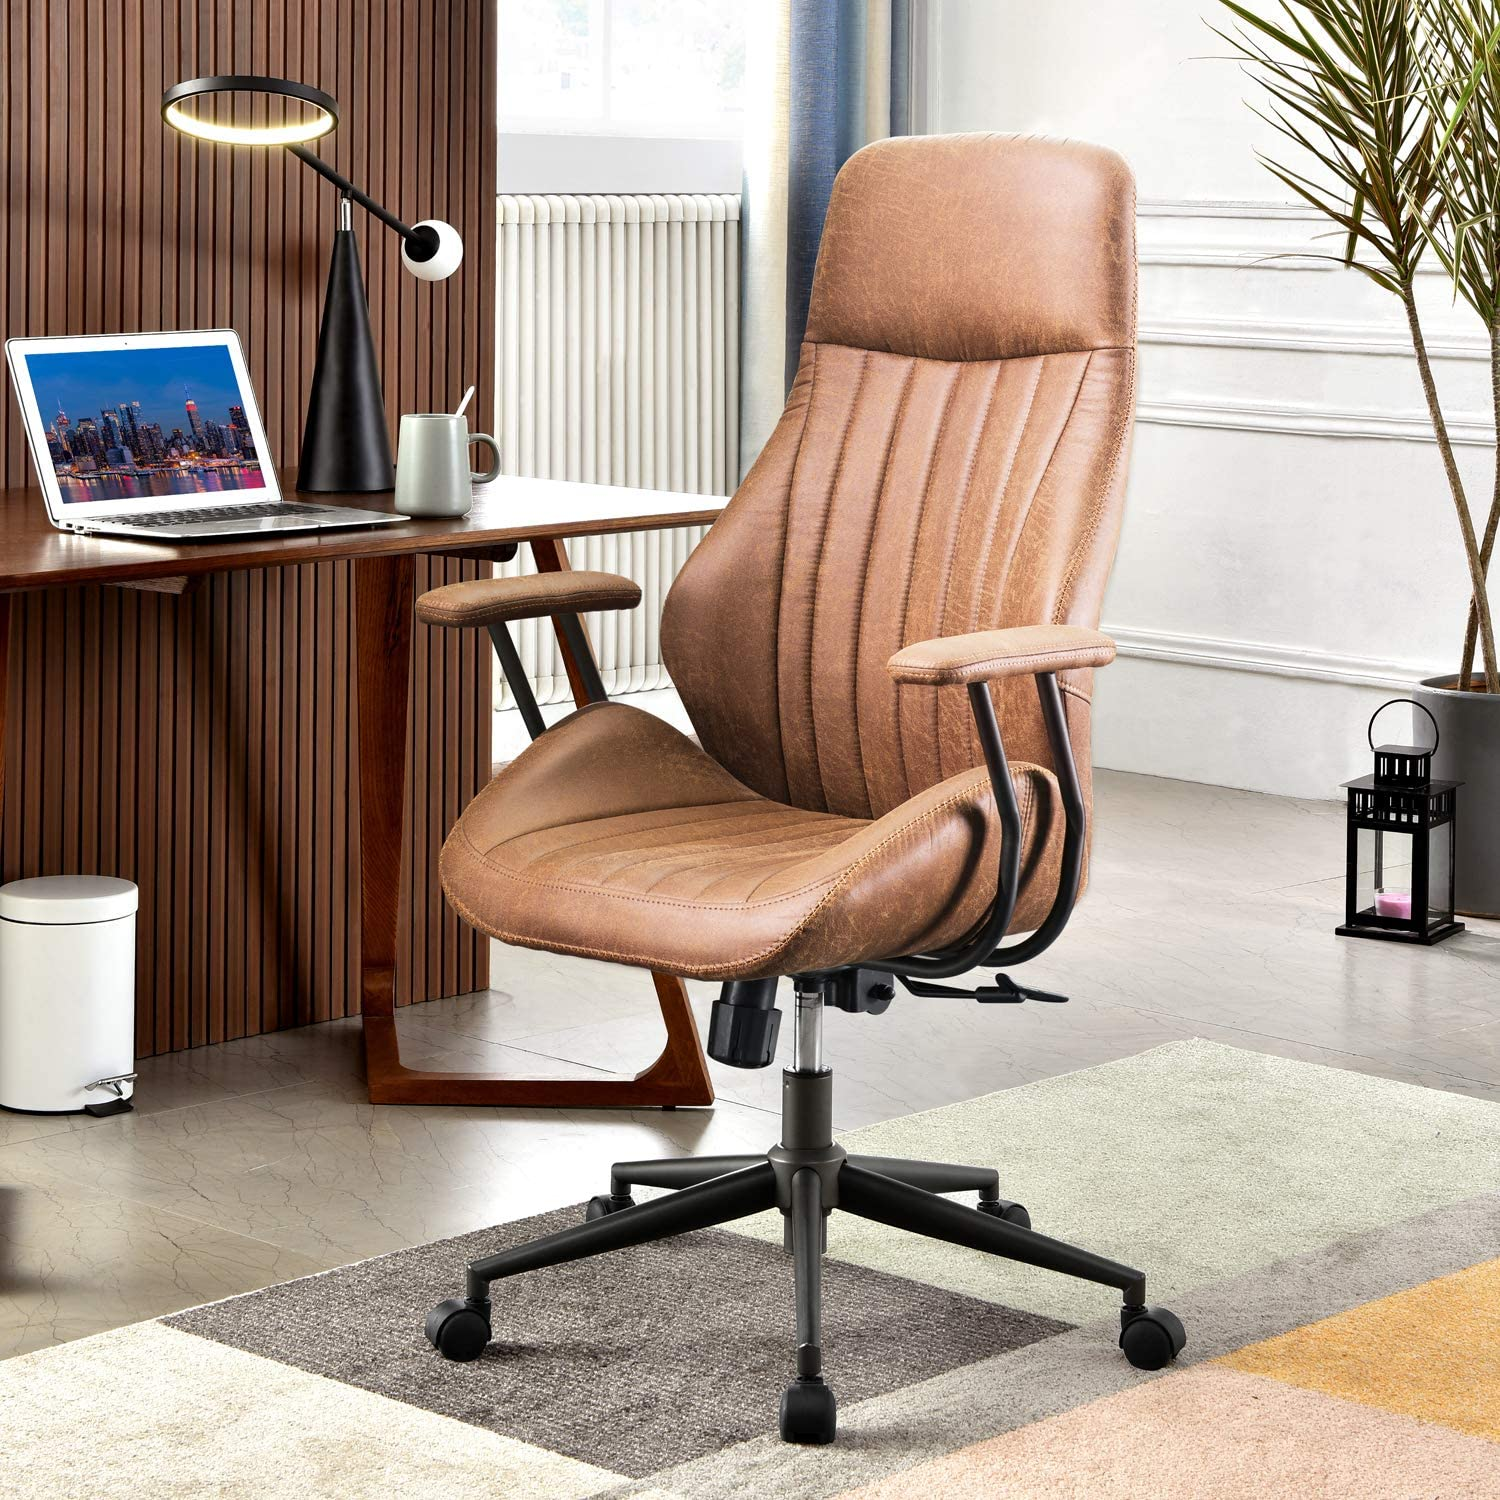 XIZZI Ergonomic Chair, Modern Computer Desk Chair,high Back Leathe Office Chair with Lumbar Support for Executive or Home Office (Brown)